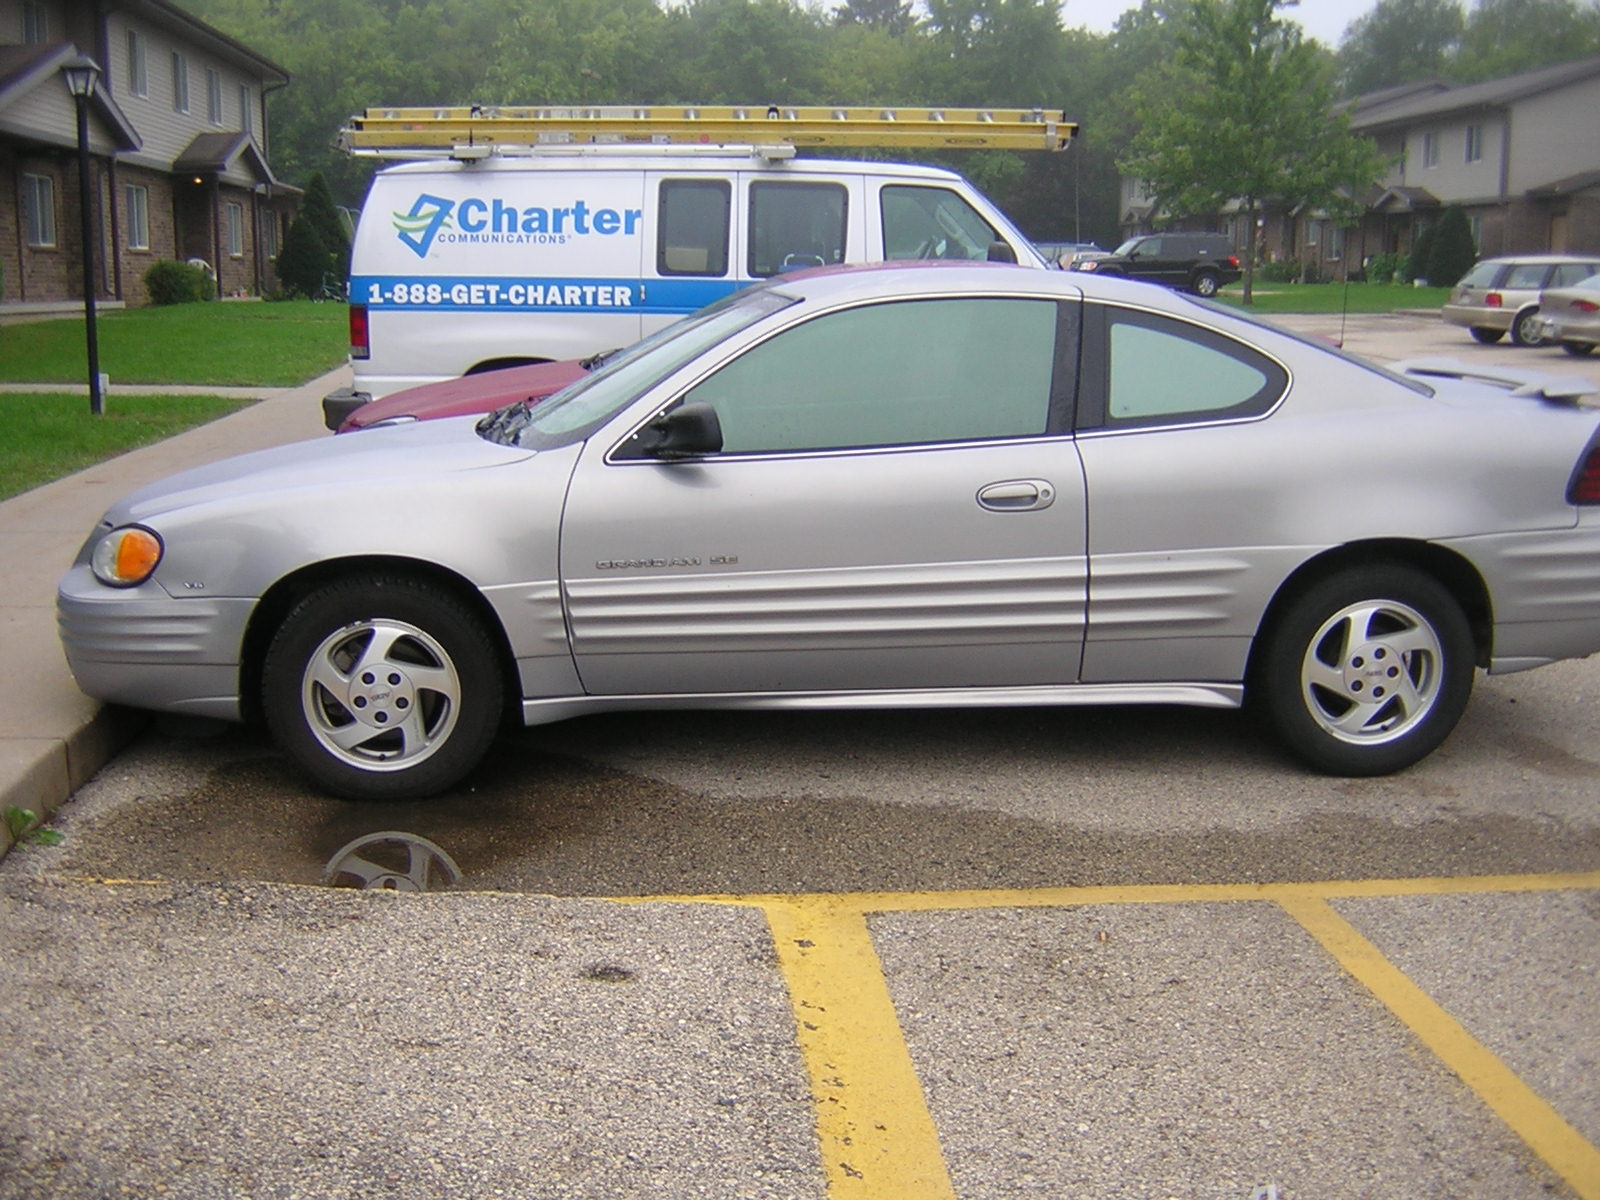 2000 Pontiac Grand Am SE2 Coupe - Pictures - 2000 Pontiac Grand Am ...